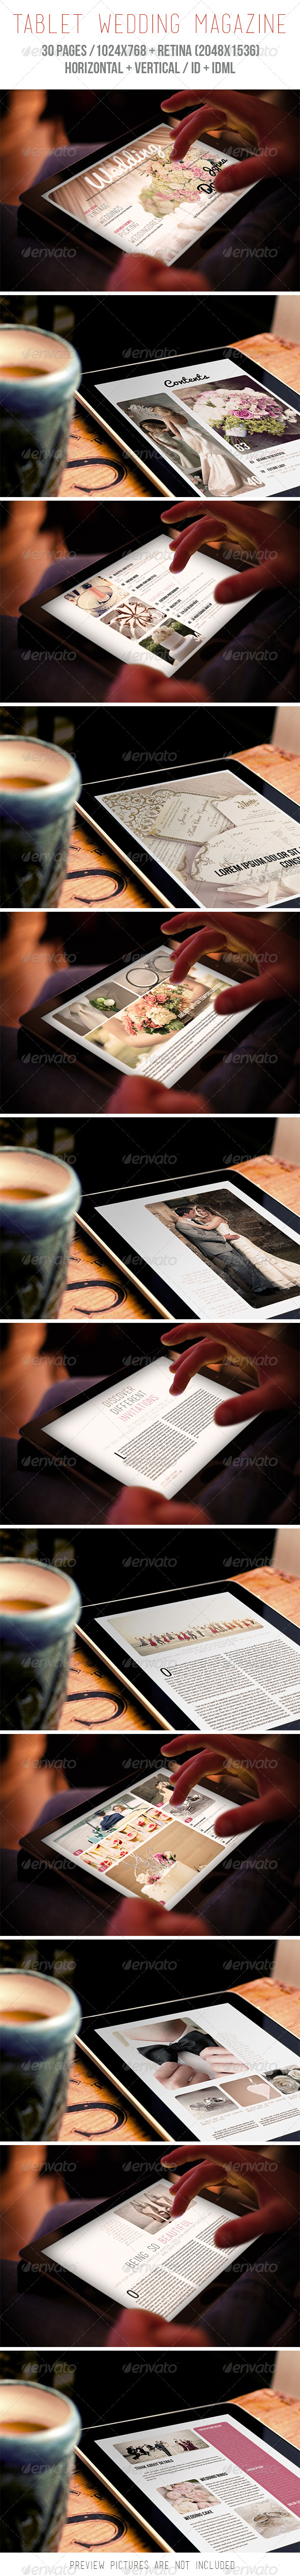 GraphicRiver Tablet Wedding Magazine 6826528